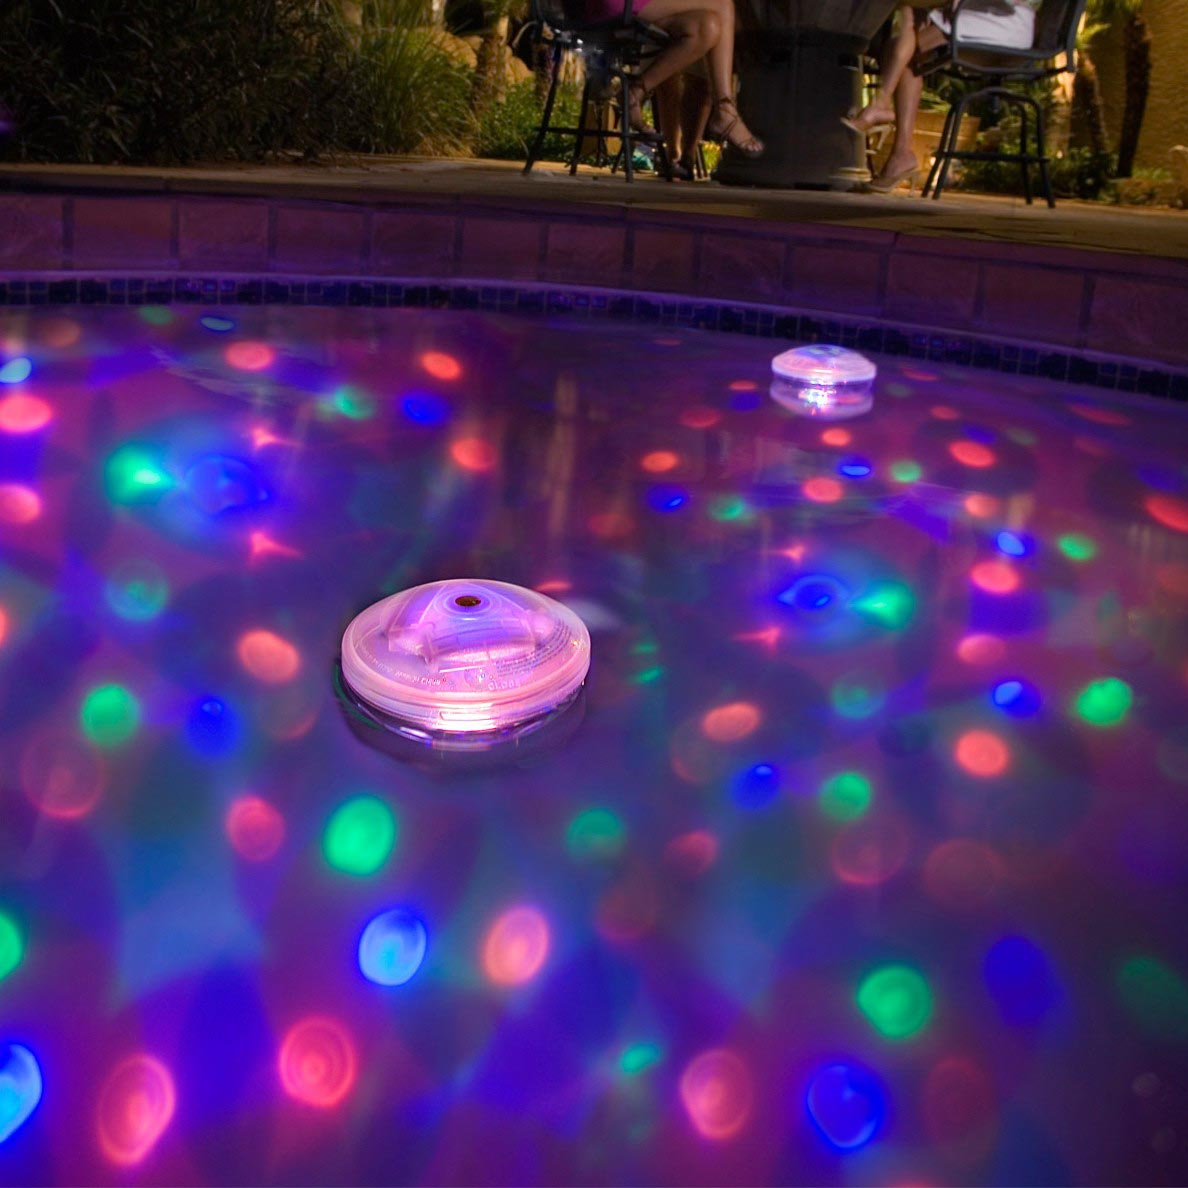 Pics Of Swimming Pools: Swimming Pool Fountain With Lights